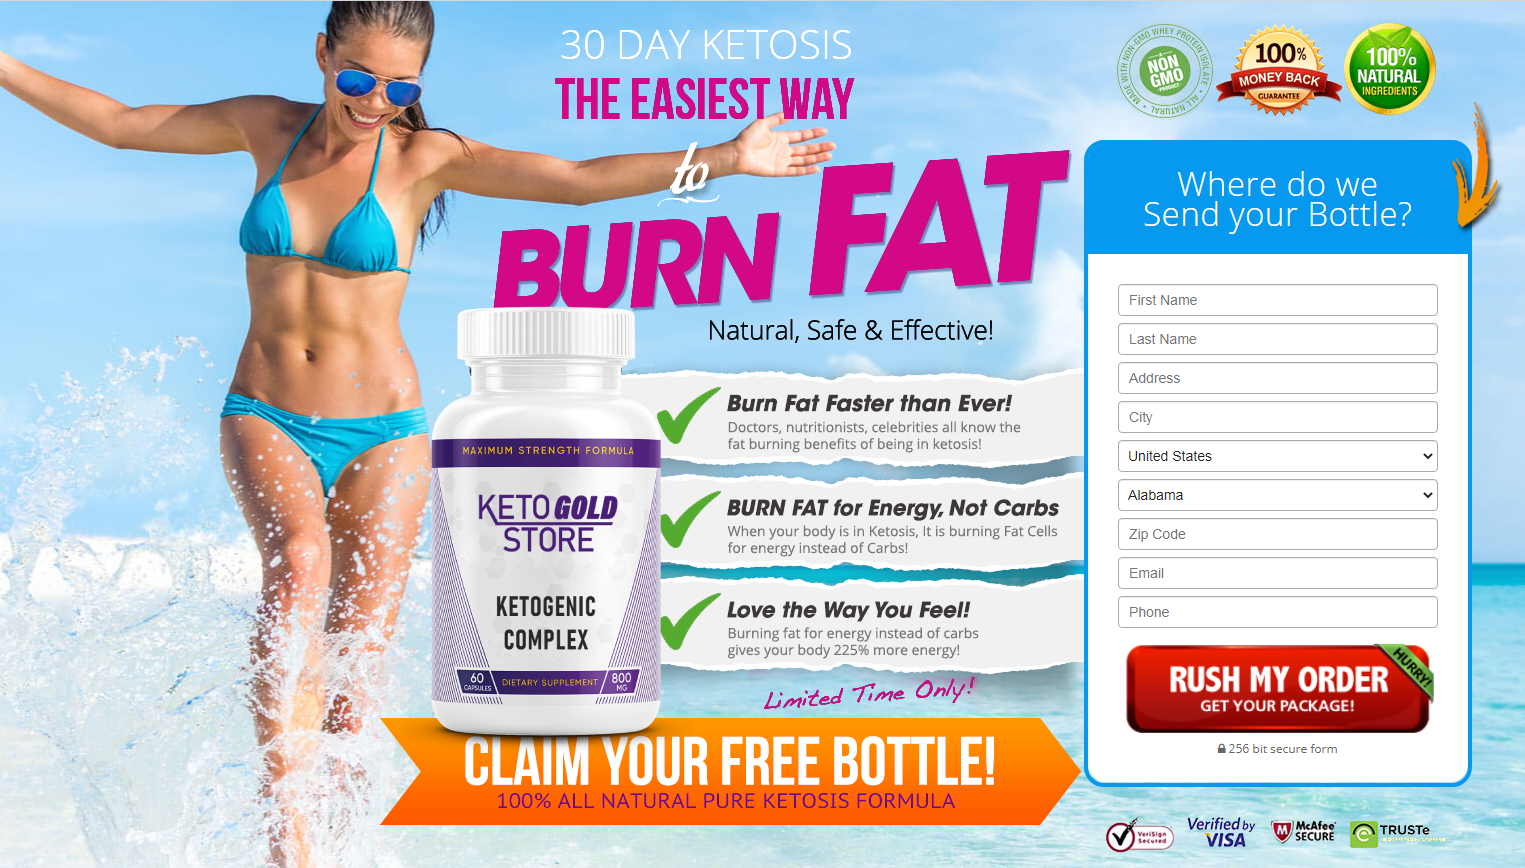 KetoGold Store [The Gold Store in Fat Burning?] Upgrade Energy Levels!